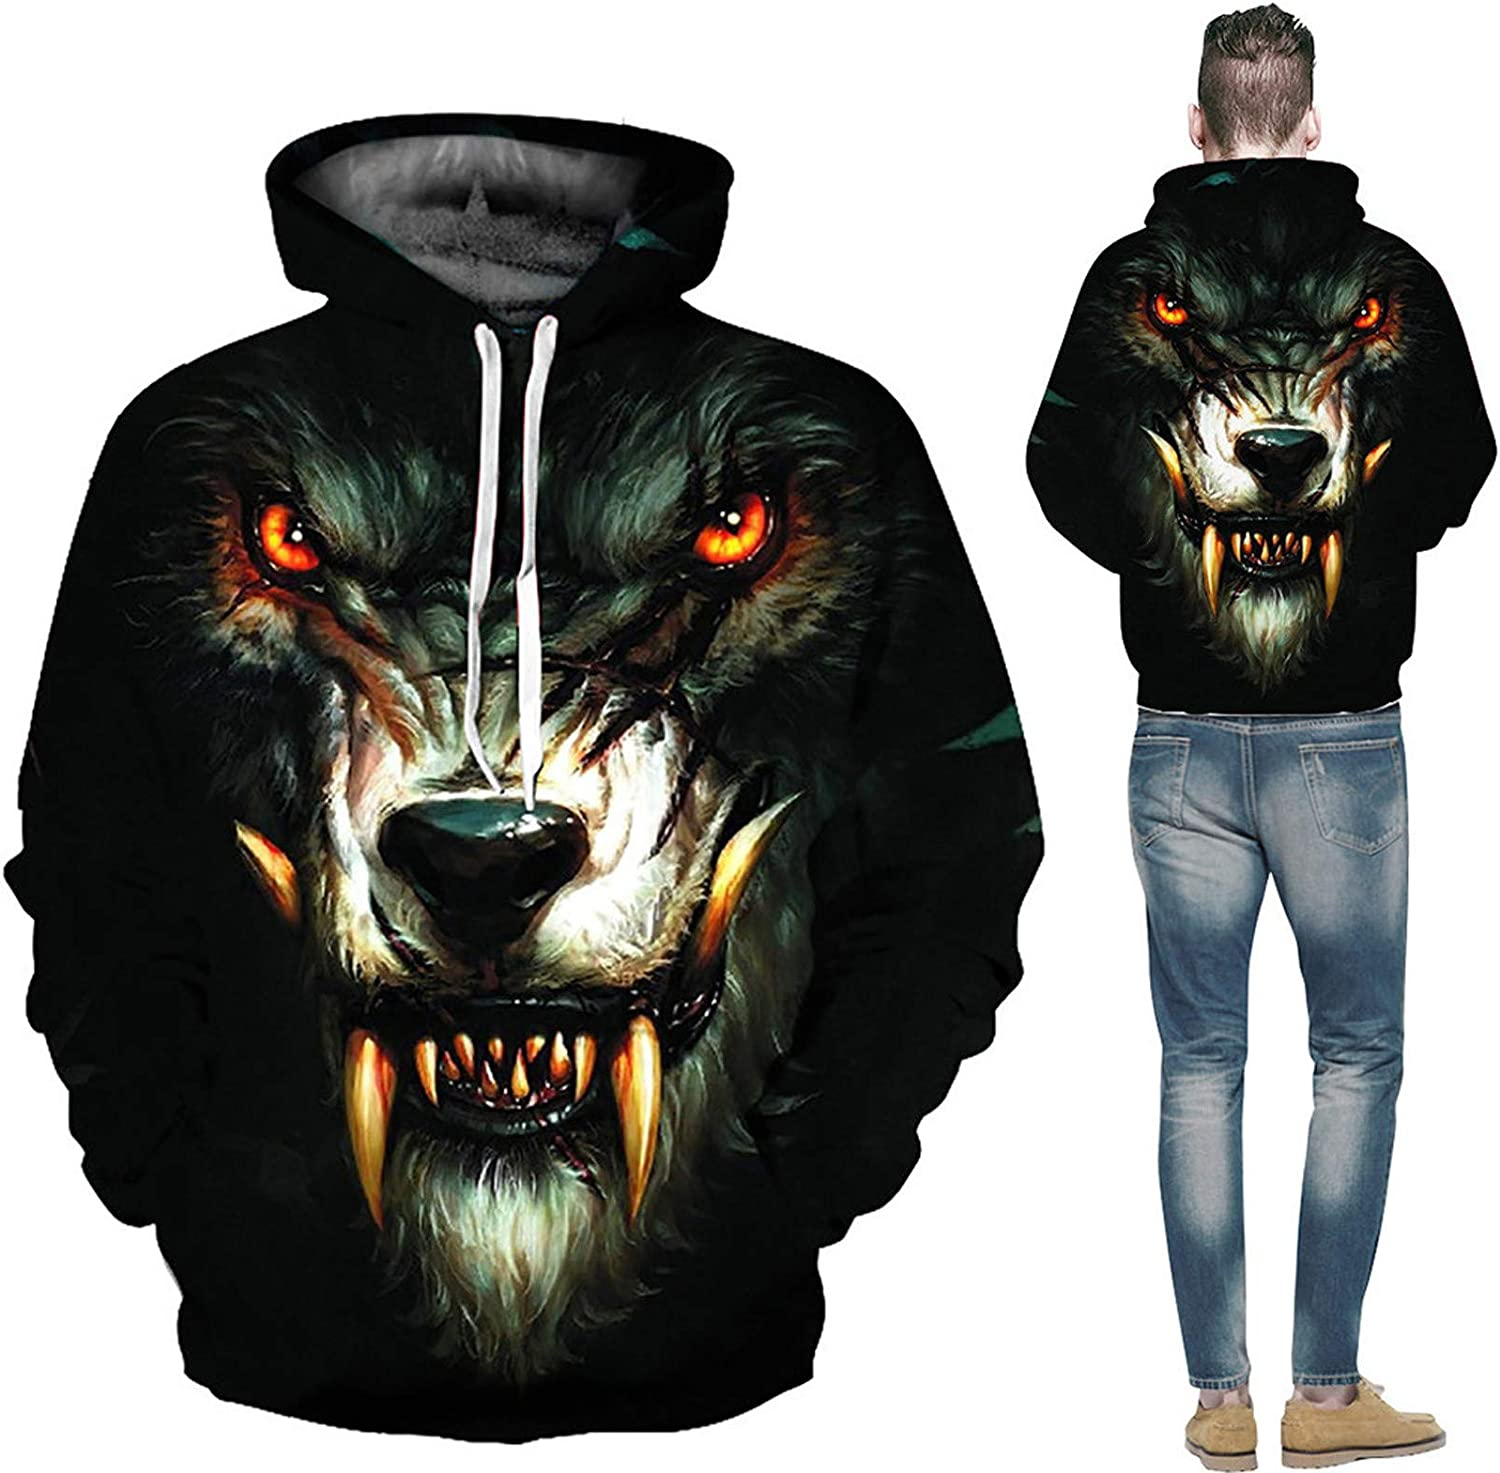 Unisex Hooded Sweatshirts with Pockets Men's Loose Drawstring Hoodie 3D Wolf Print Shirts for Men